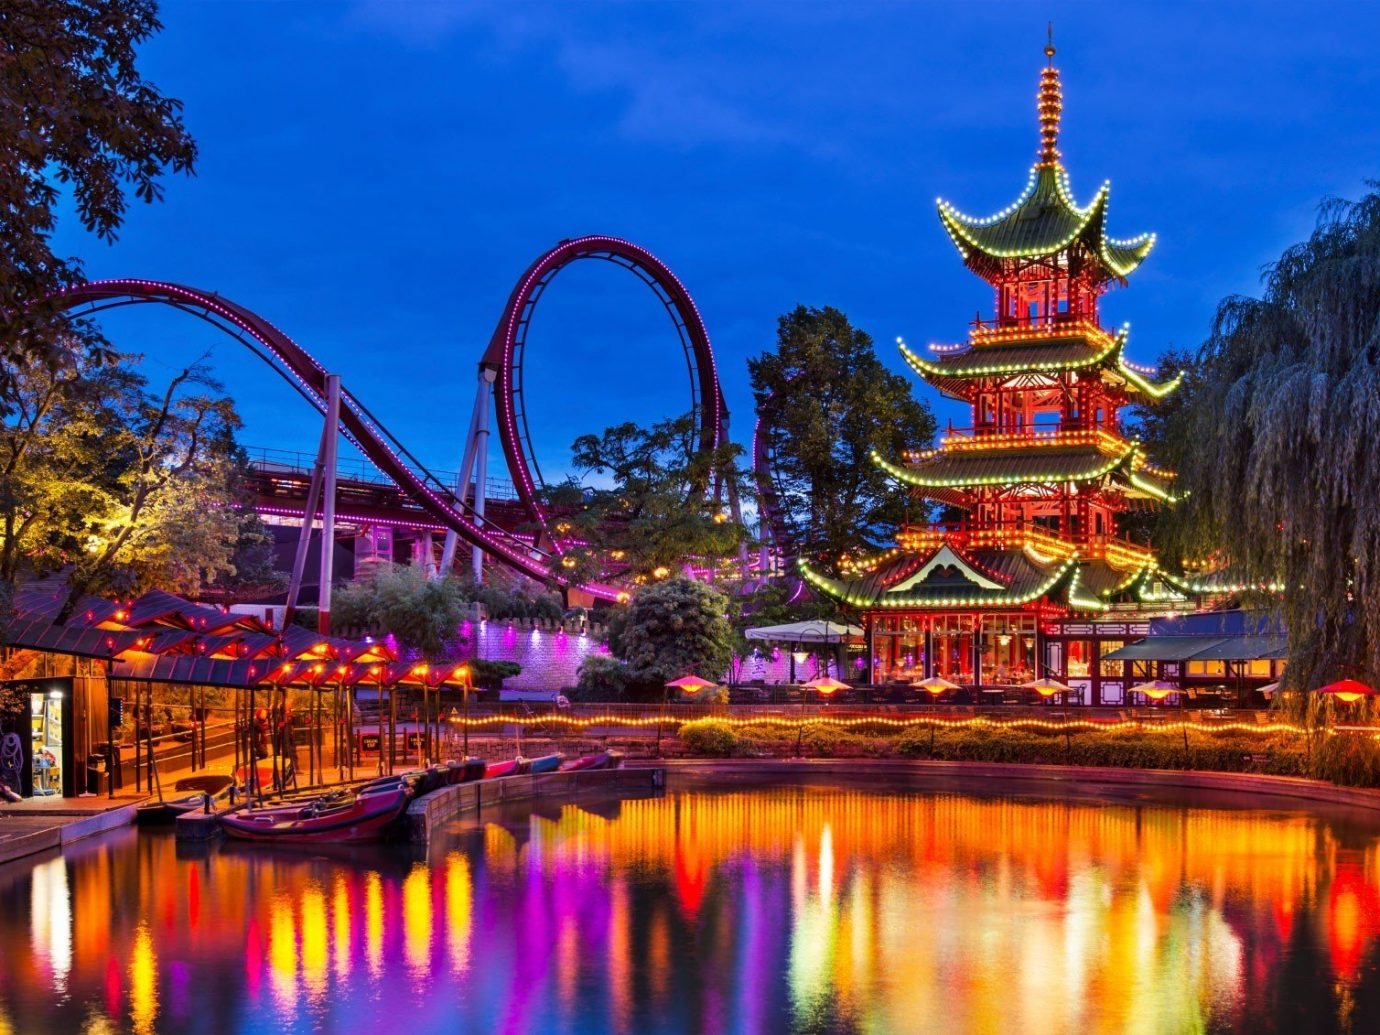 Offbeat tree water outdoor sky landmark River amusement park night reflection park evening cityscape Resort temple colorful